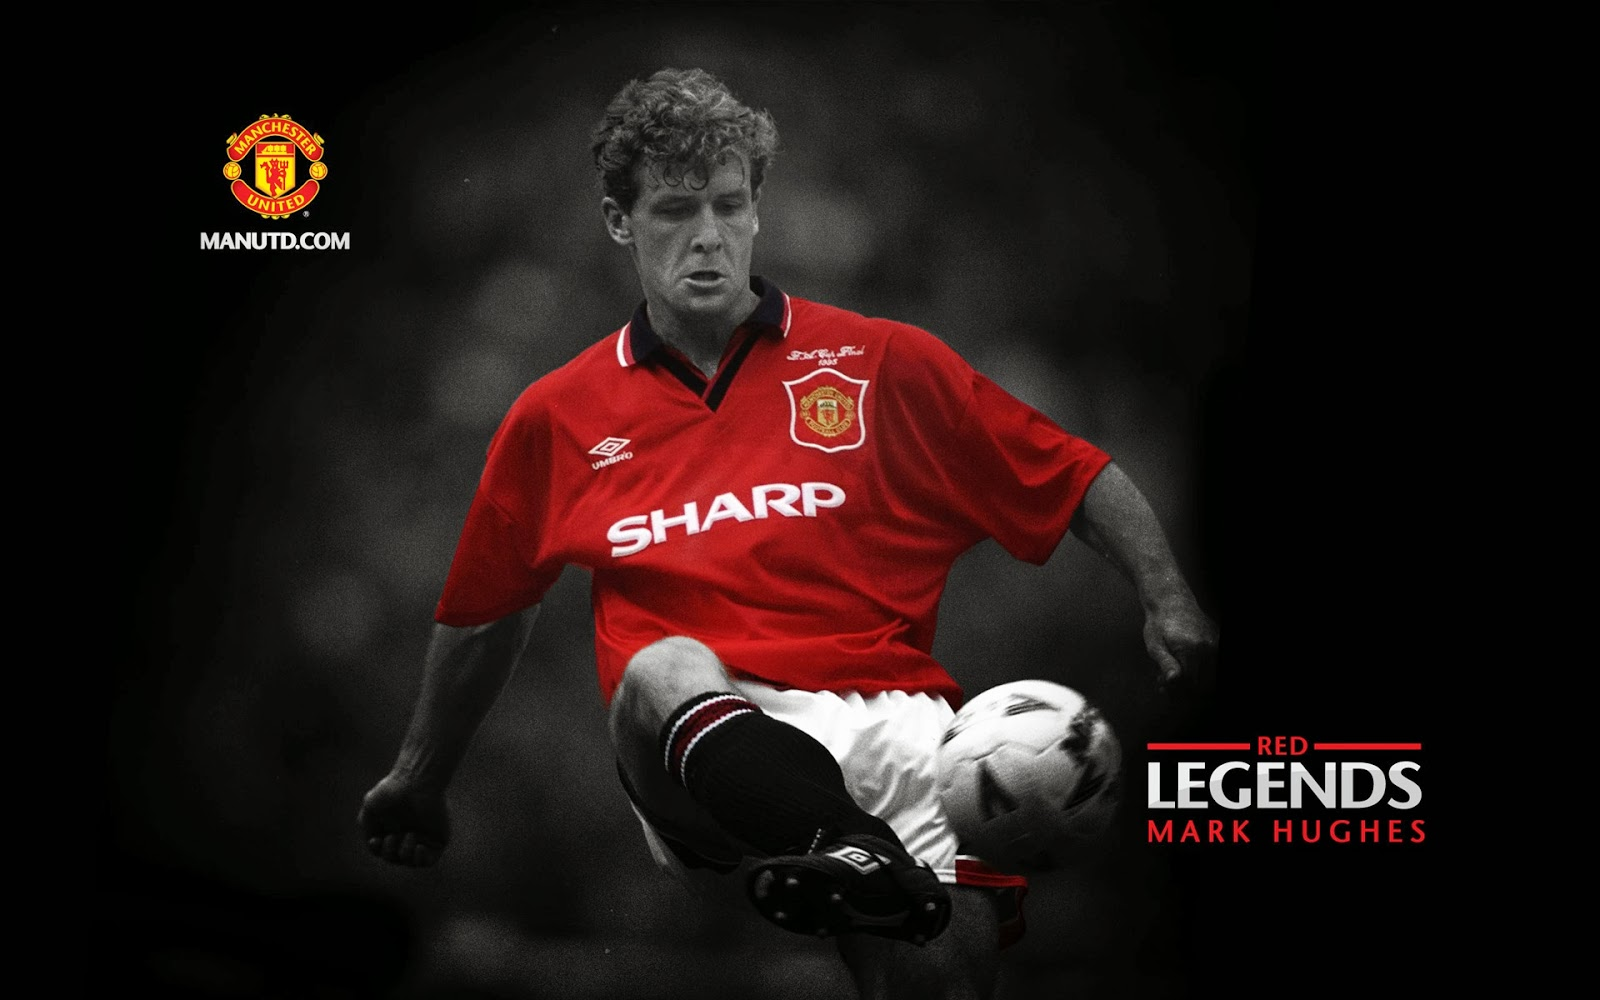 Motorcycles Of Manchester >> Hughes: Red Legends Manchester United ~ Mystery Wallpaper